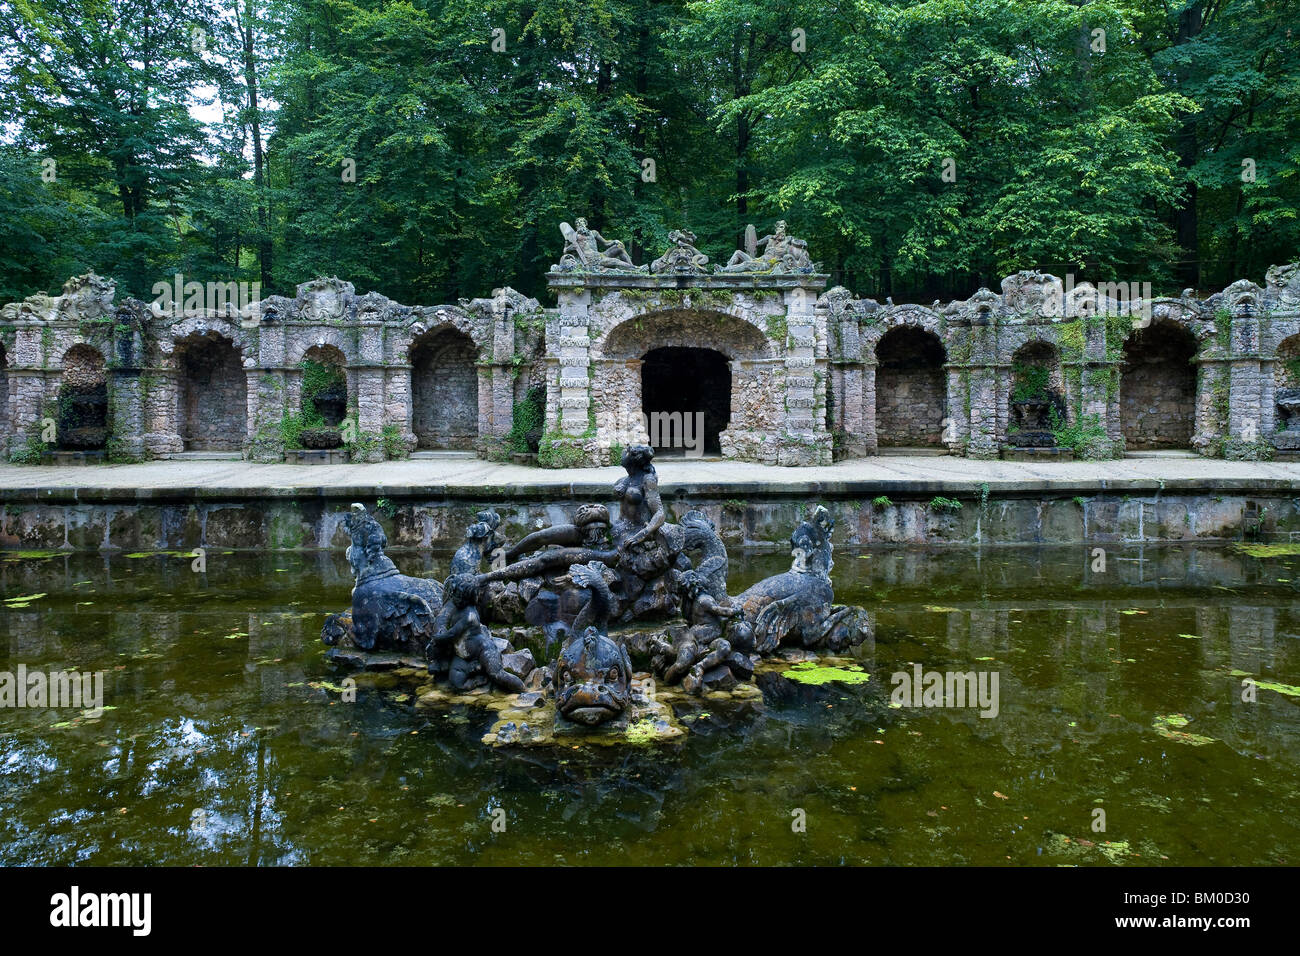 Parnass in the Eremitage park, Bayreuth, Bavaria, Germany, Europe - Stock Image